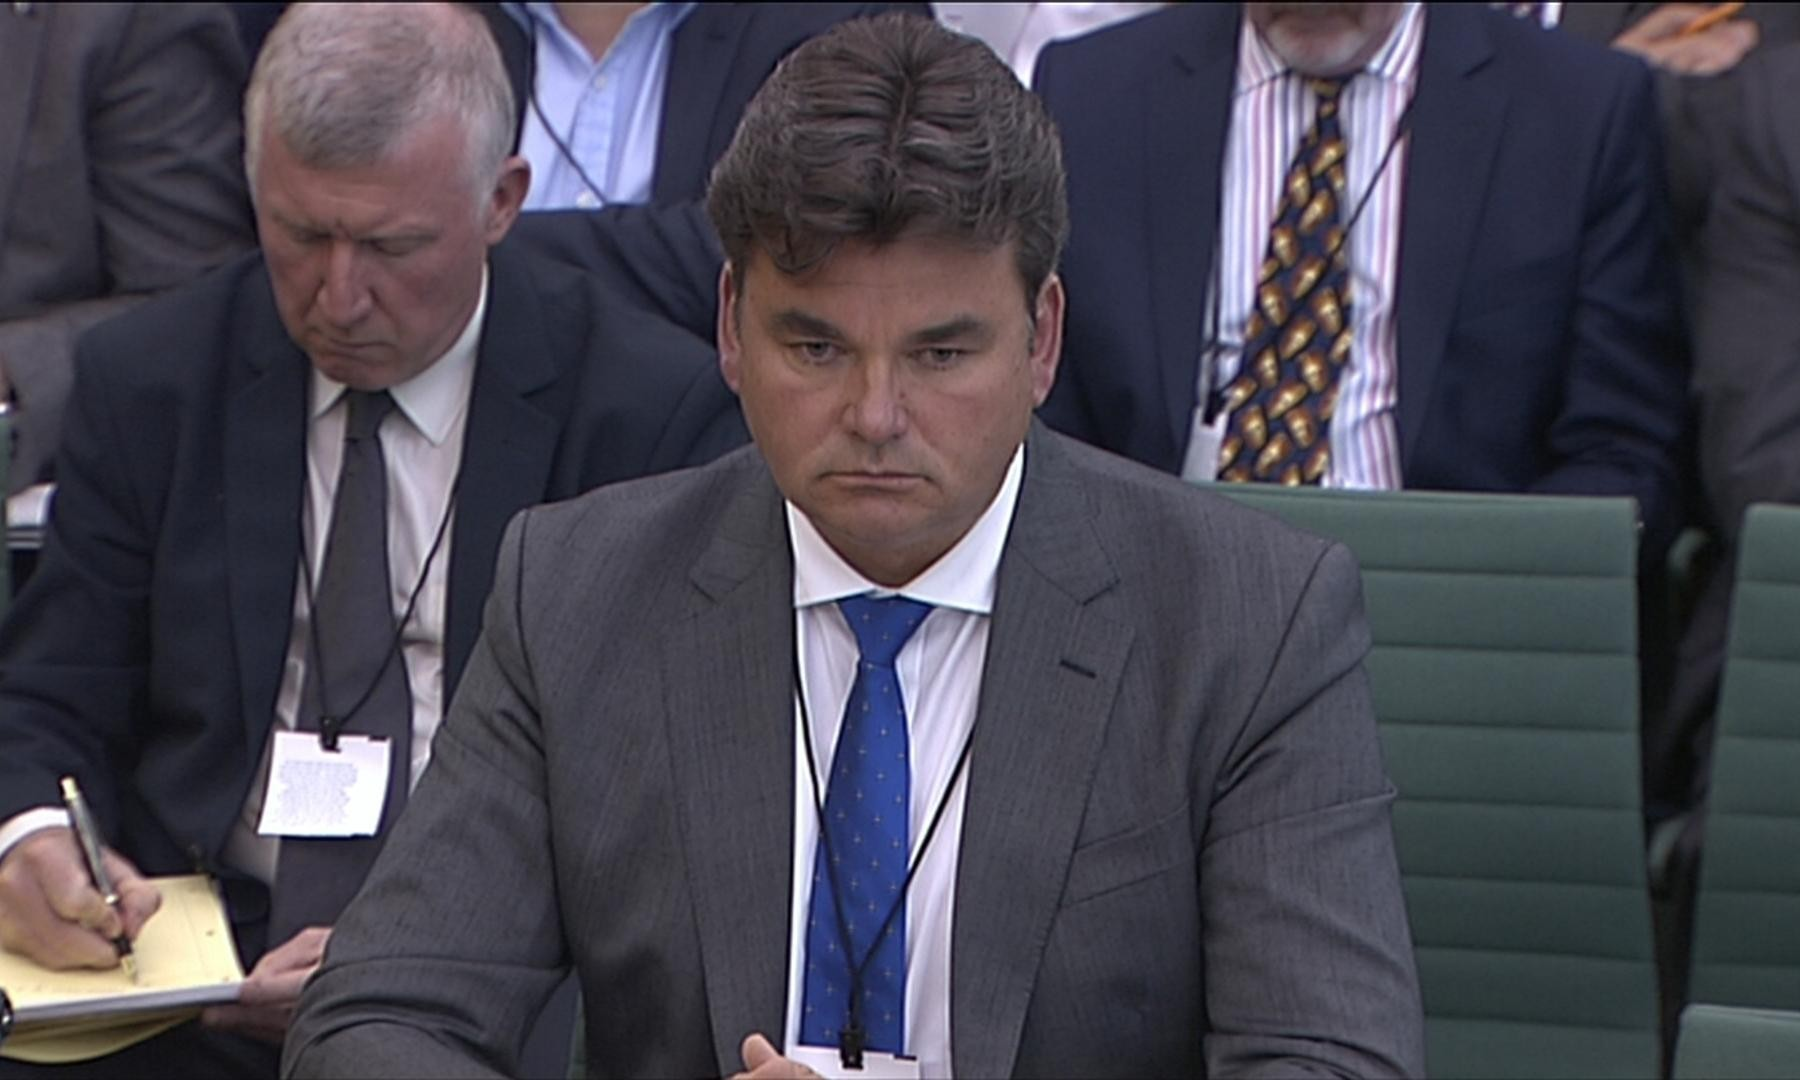 Dominic Chappell accused of treating BHS money as his own